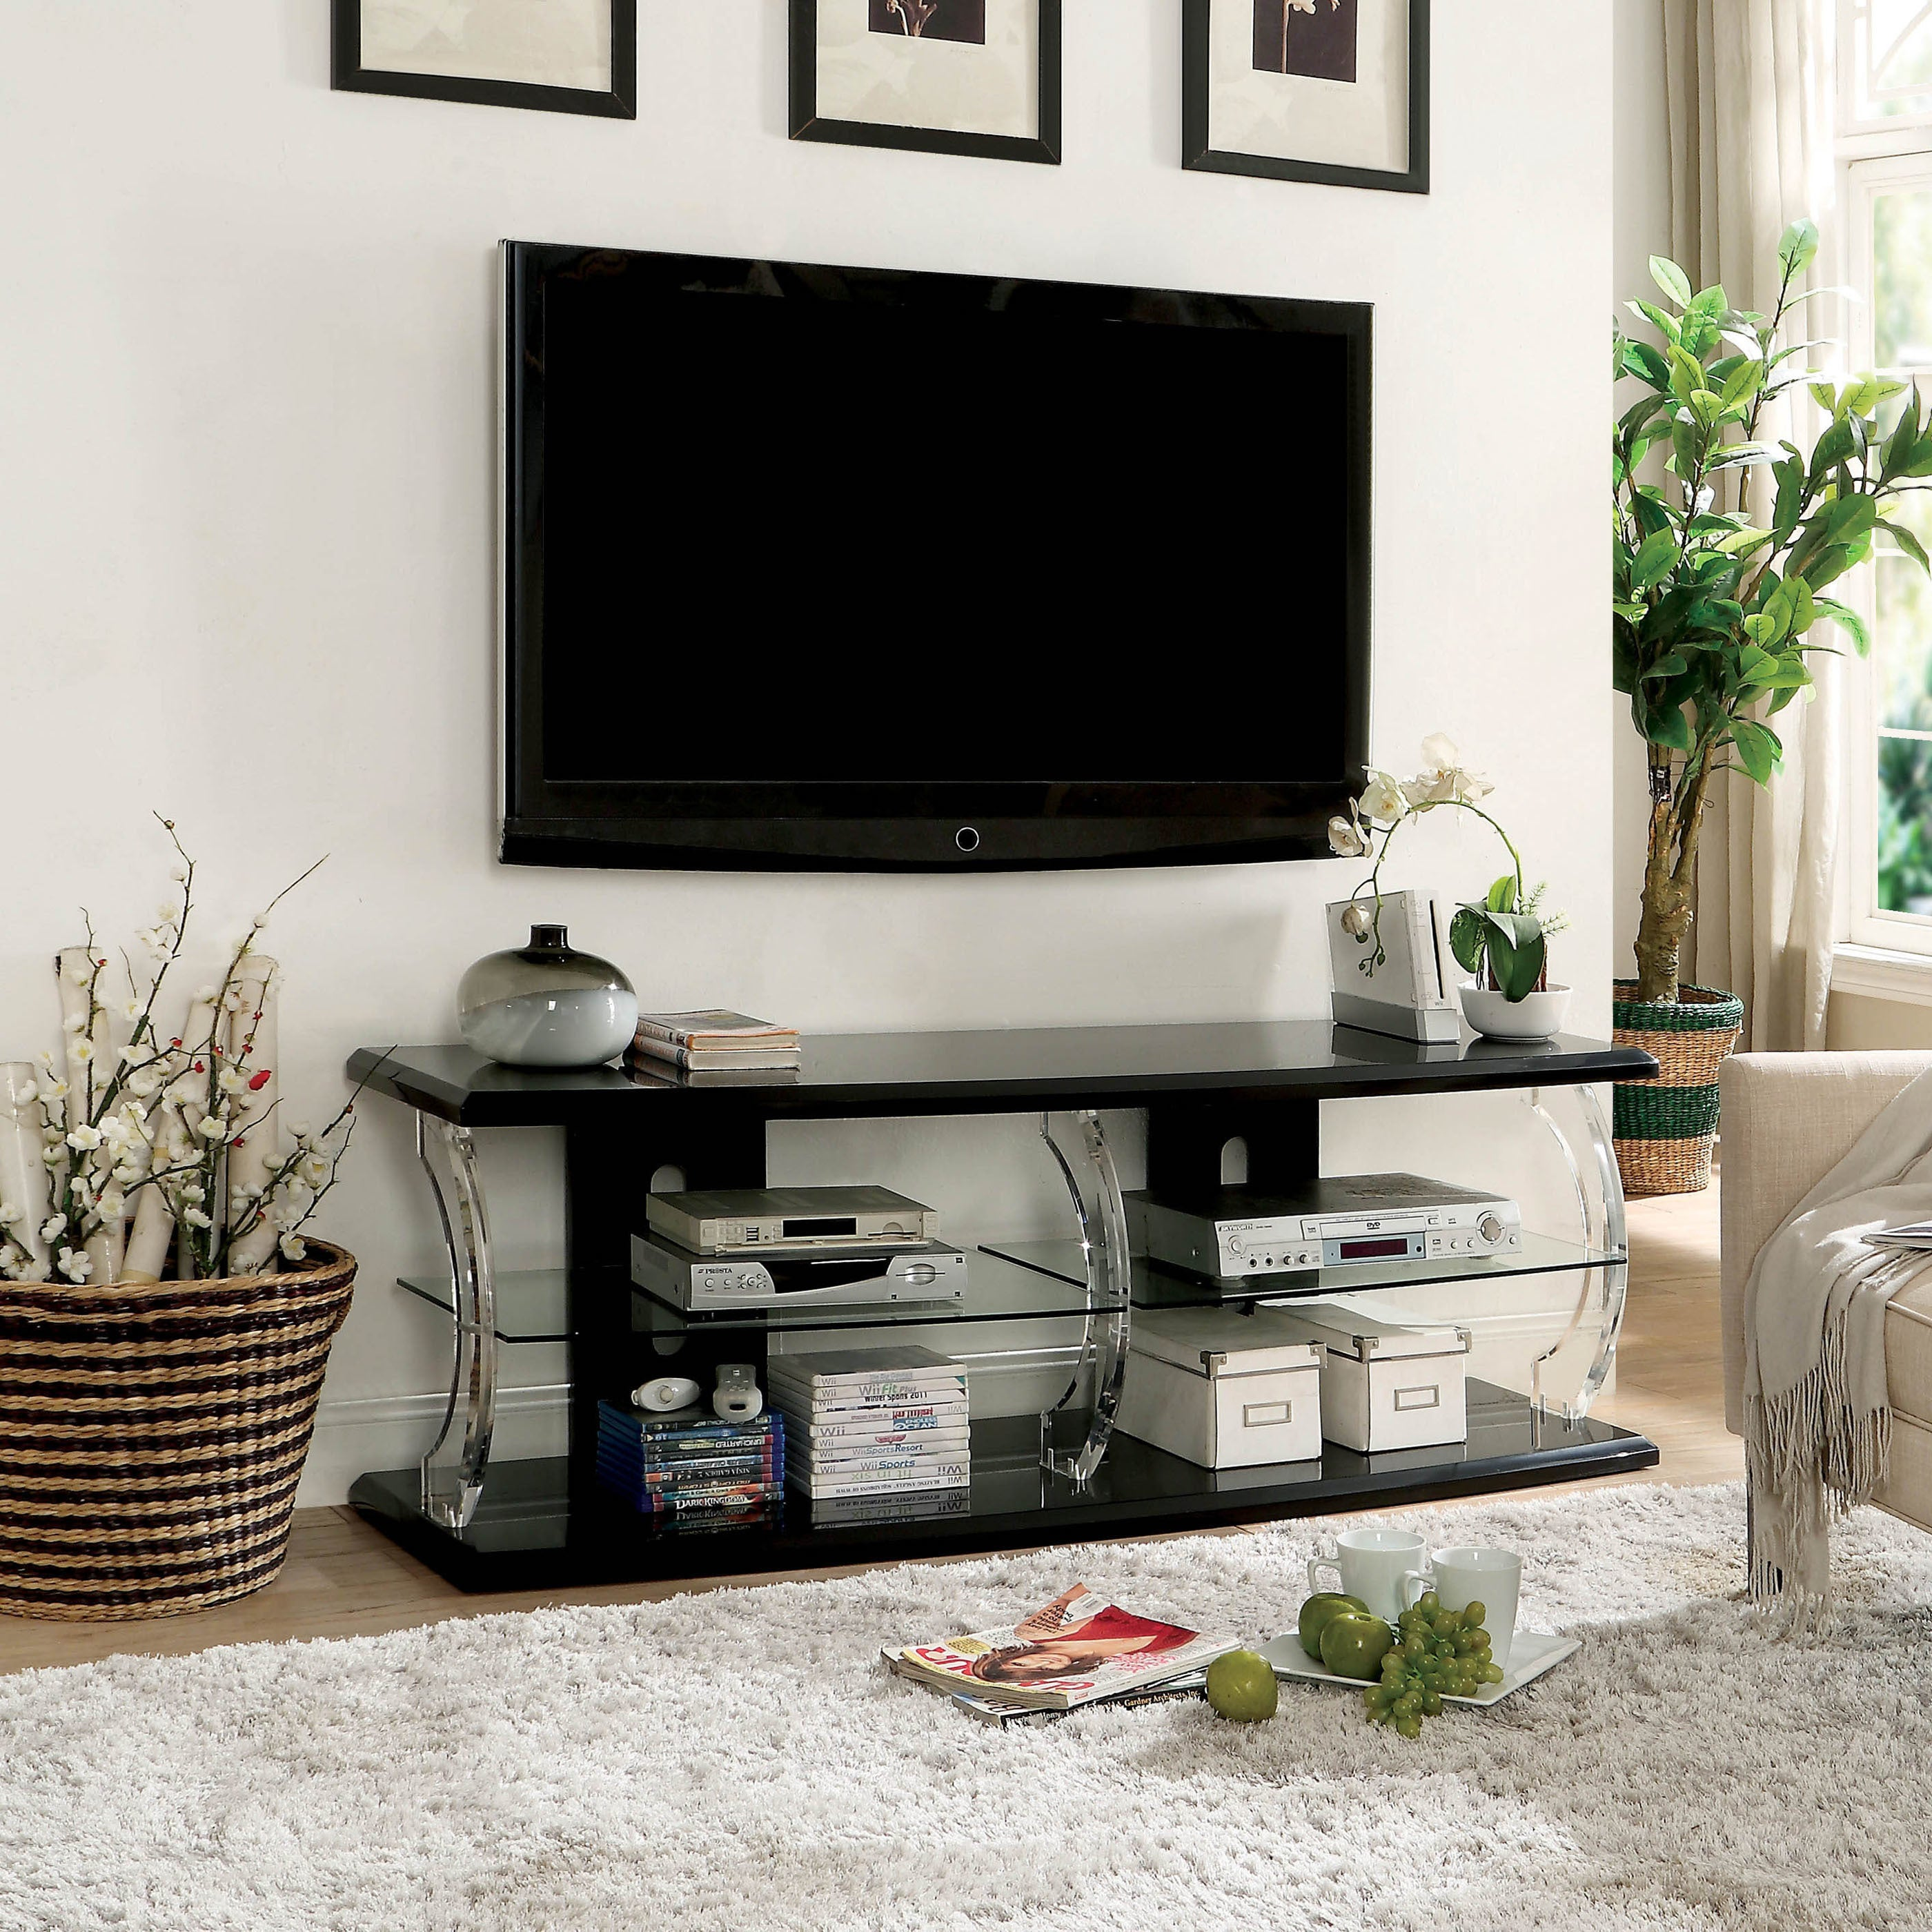 Shop tekna modern tv stand with led by foa on sale free shipping today overstock 20865583